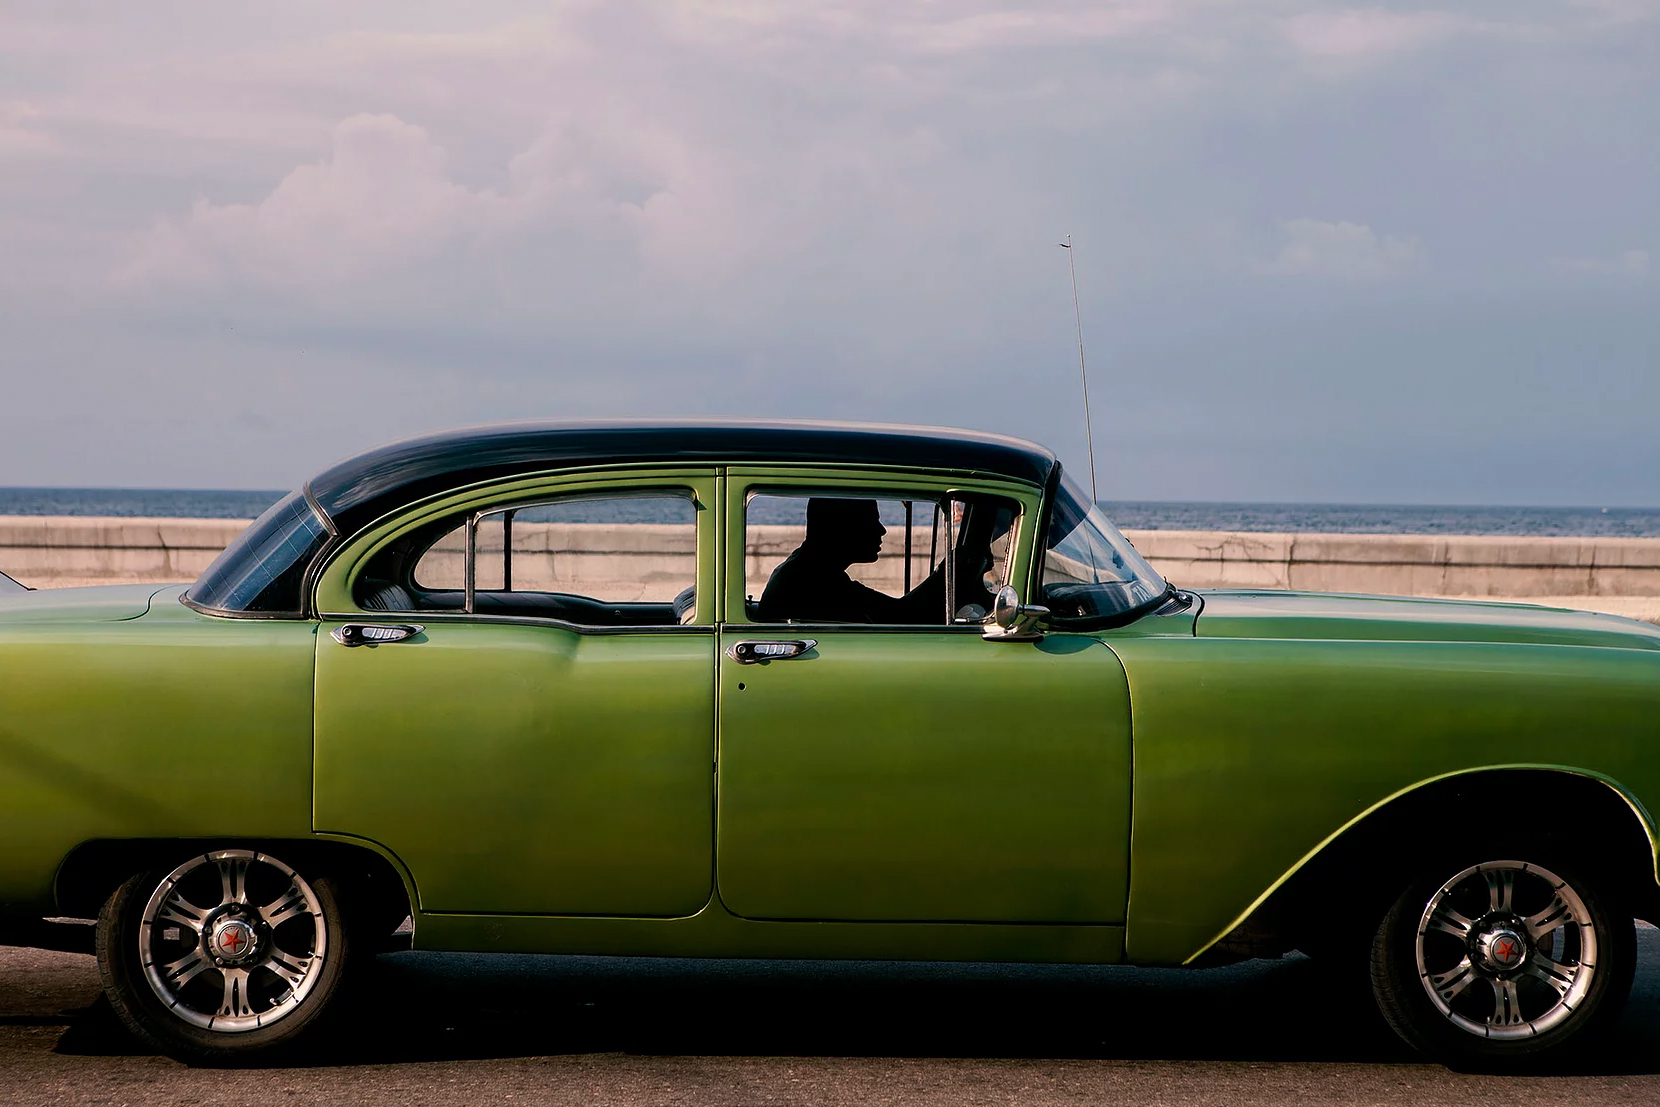 Color photo by Alex Almeida, vintage green car Cuba.